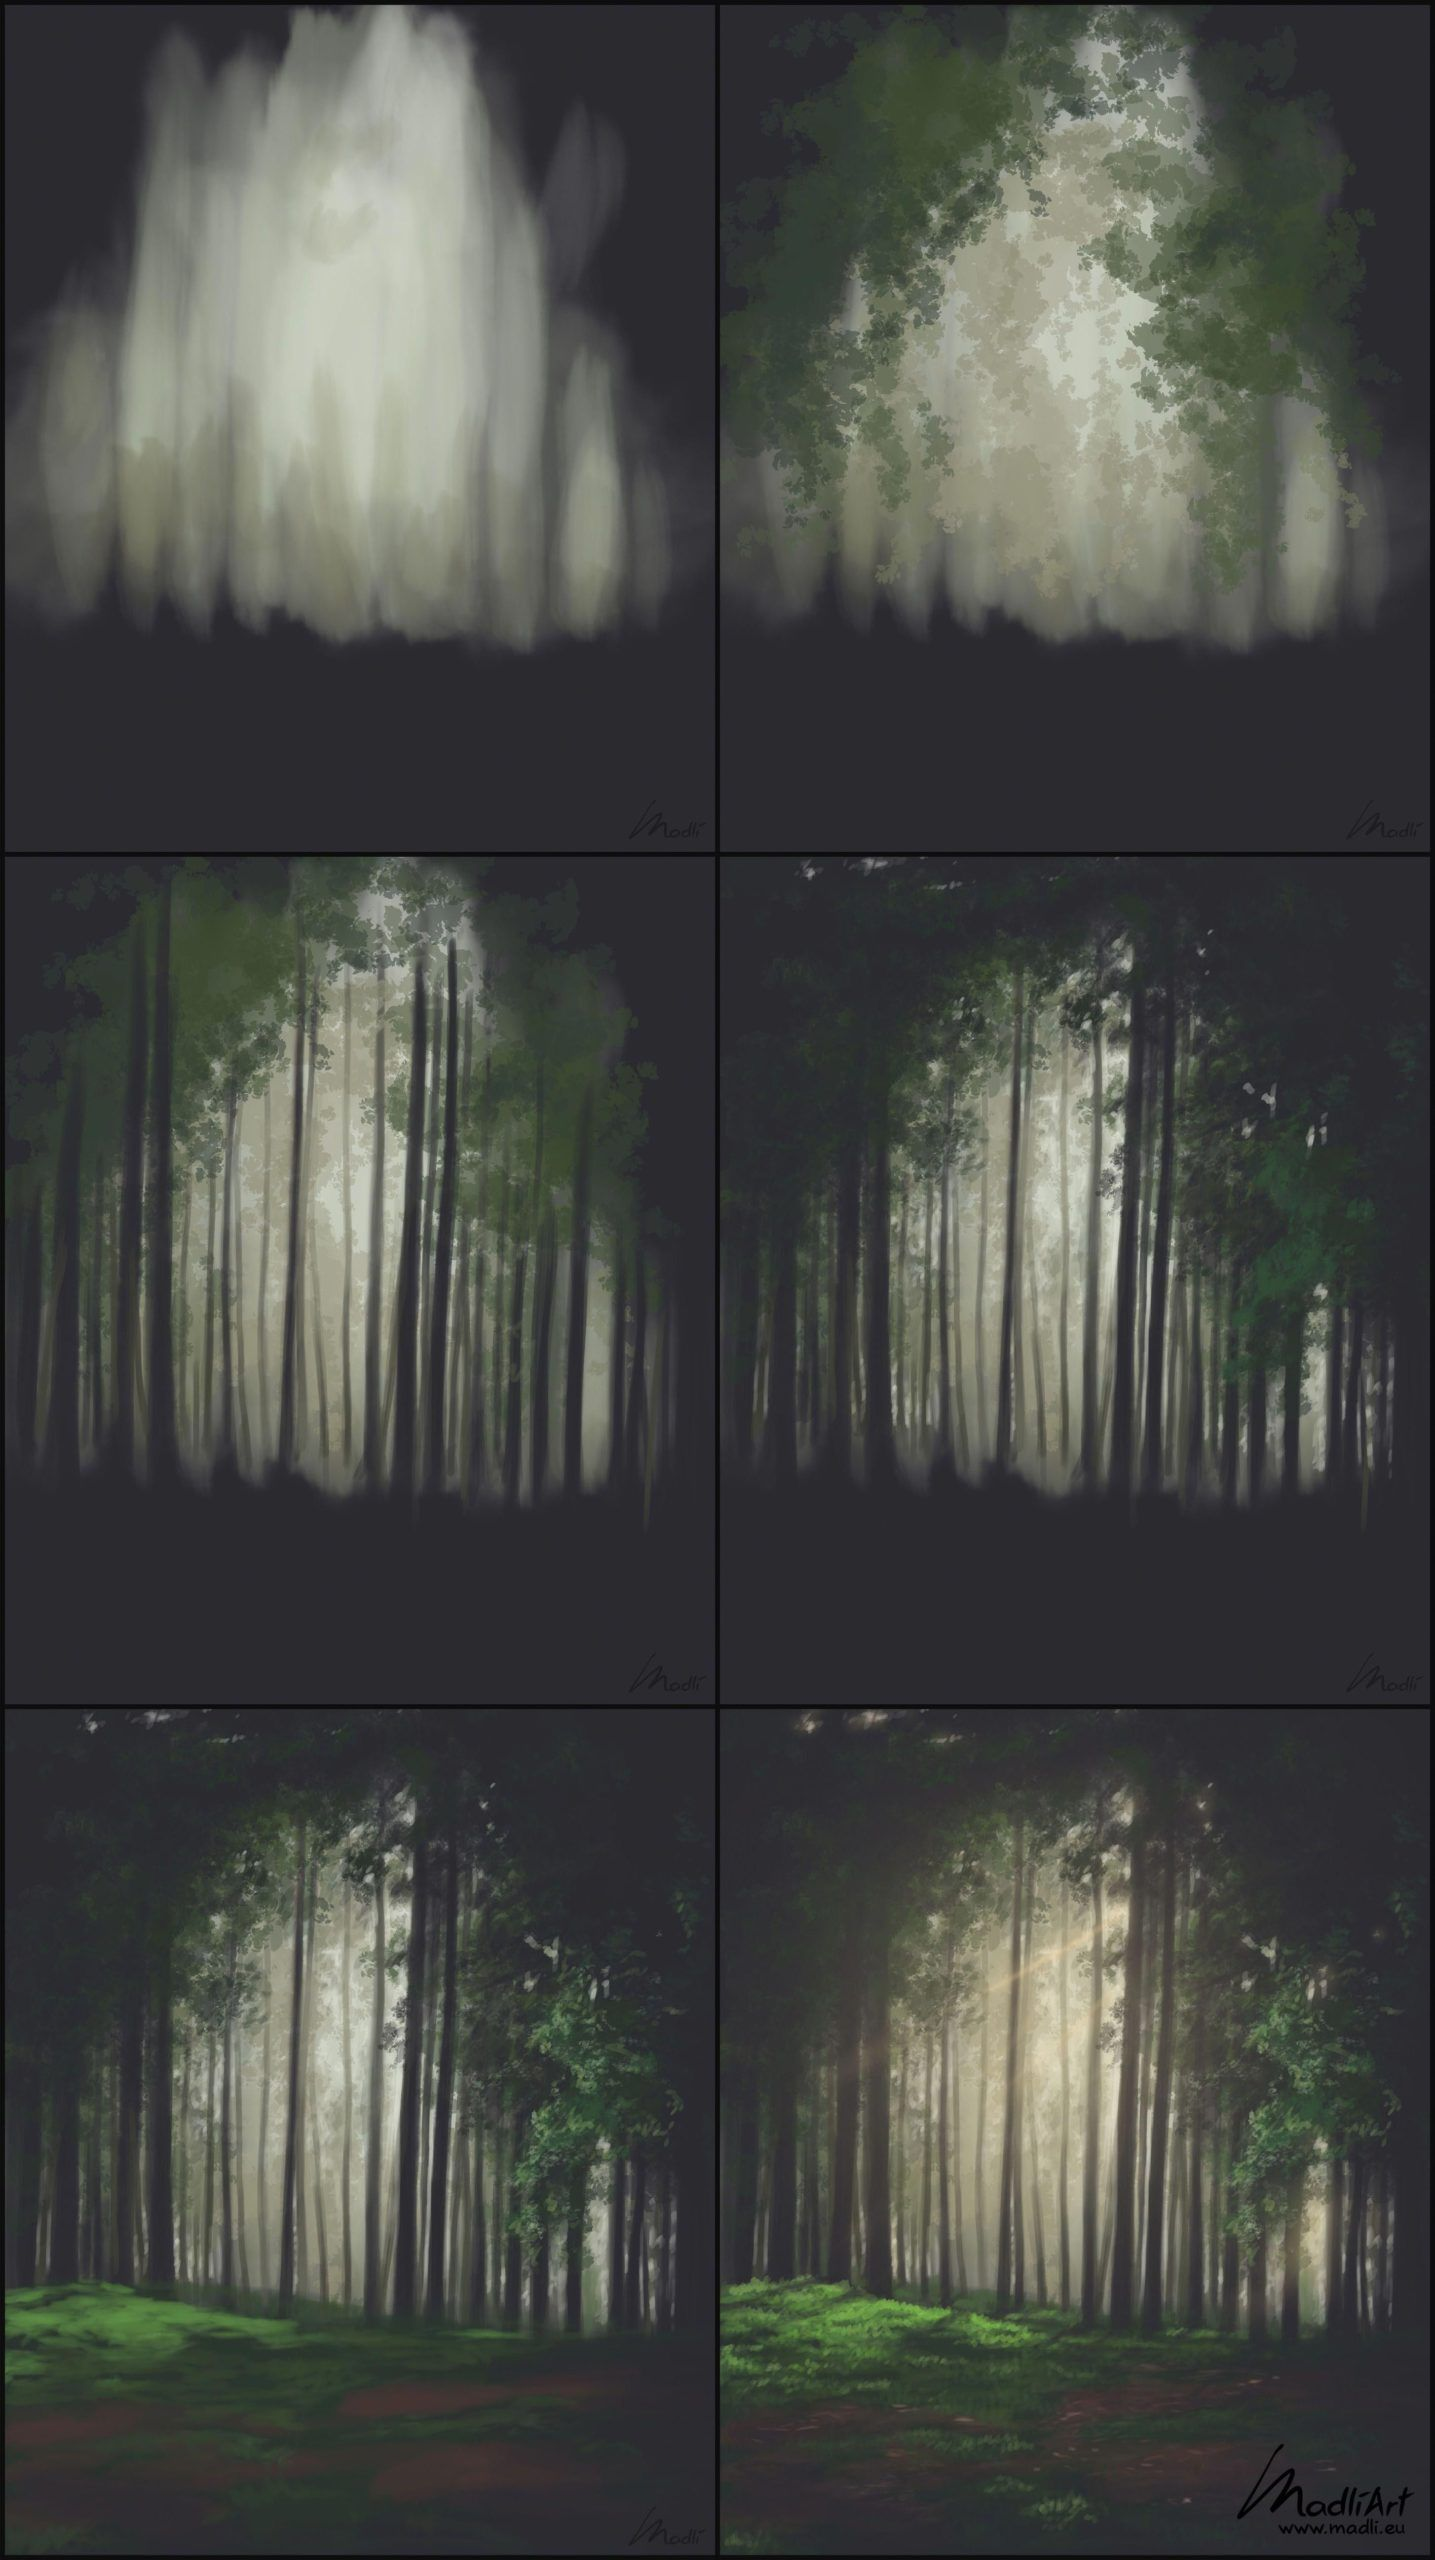 How to paint green lush forest. Digital painting of beautiful evening light. F ... - #Beautiful #Digital #evening #forest #green #IllustrationArt #Light #lush #Paint #painting #PaintingArt #WatercolorArt